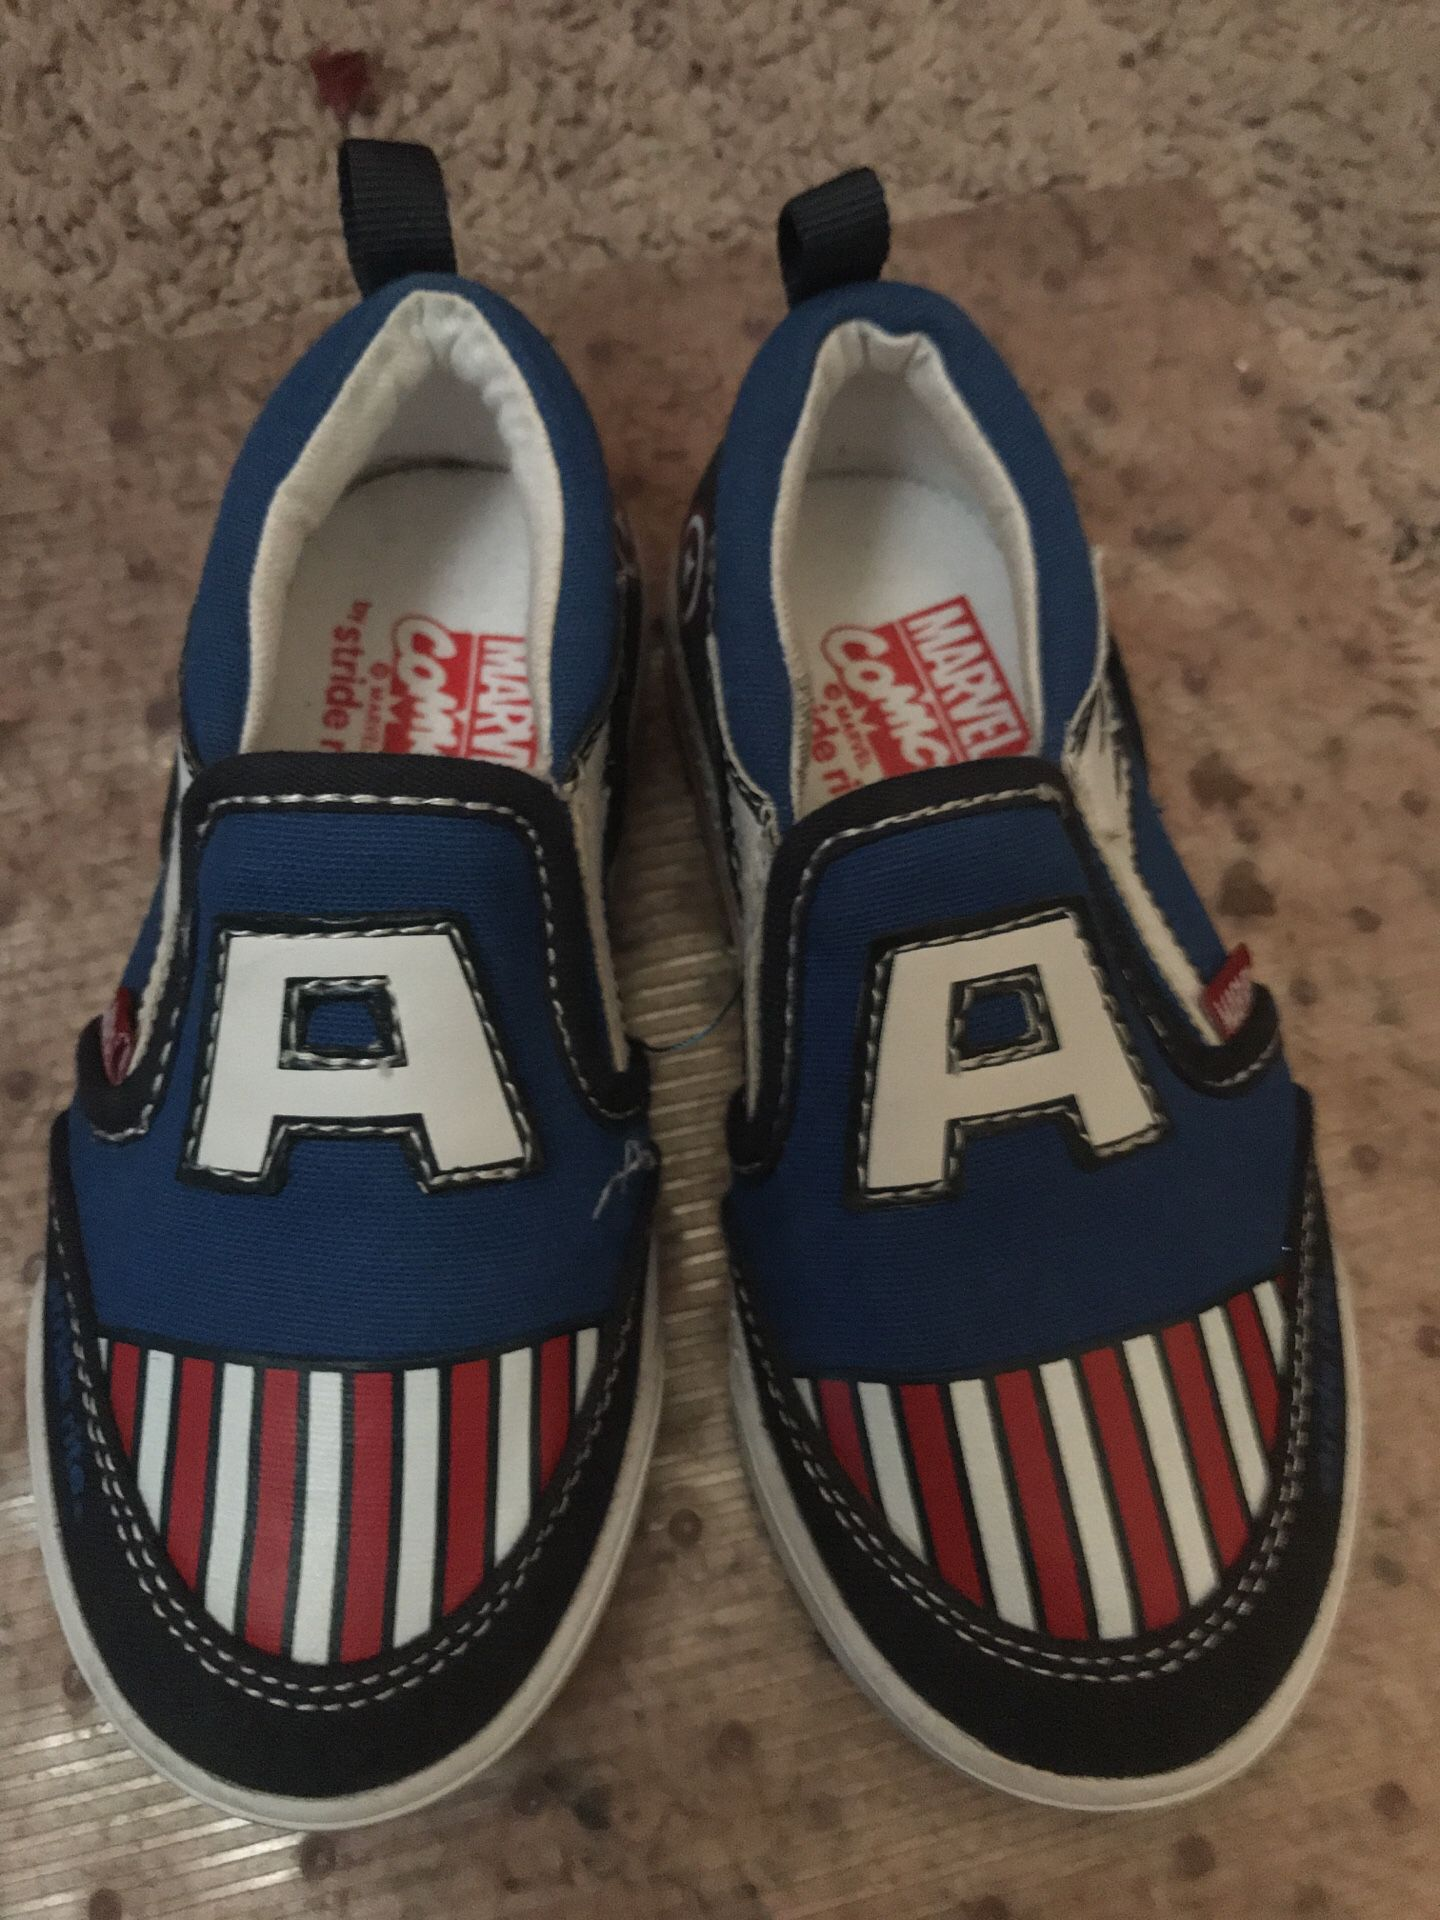 Size 8.5 kids toddler shoes